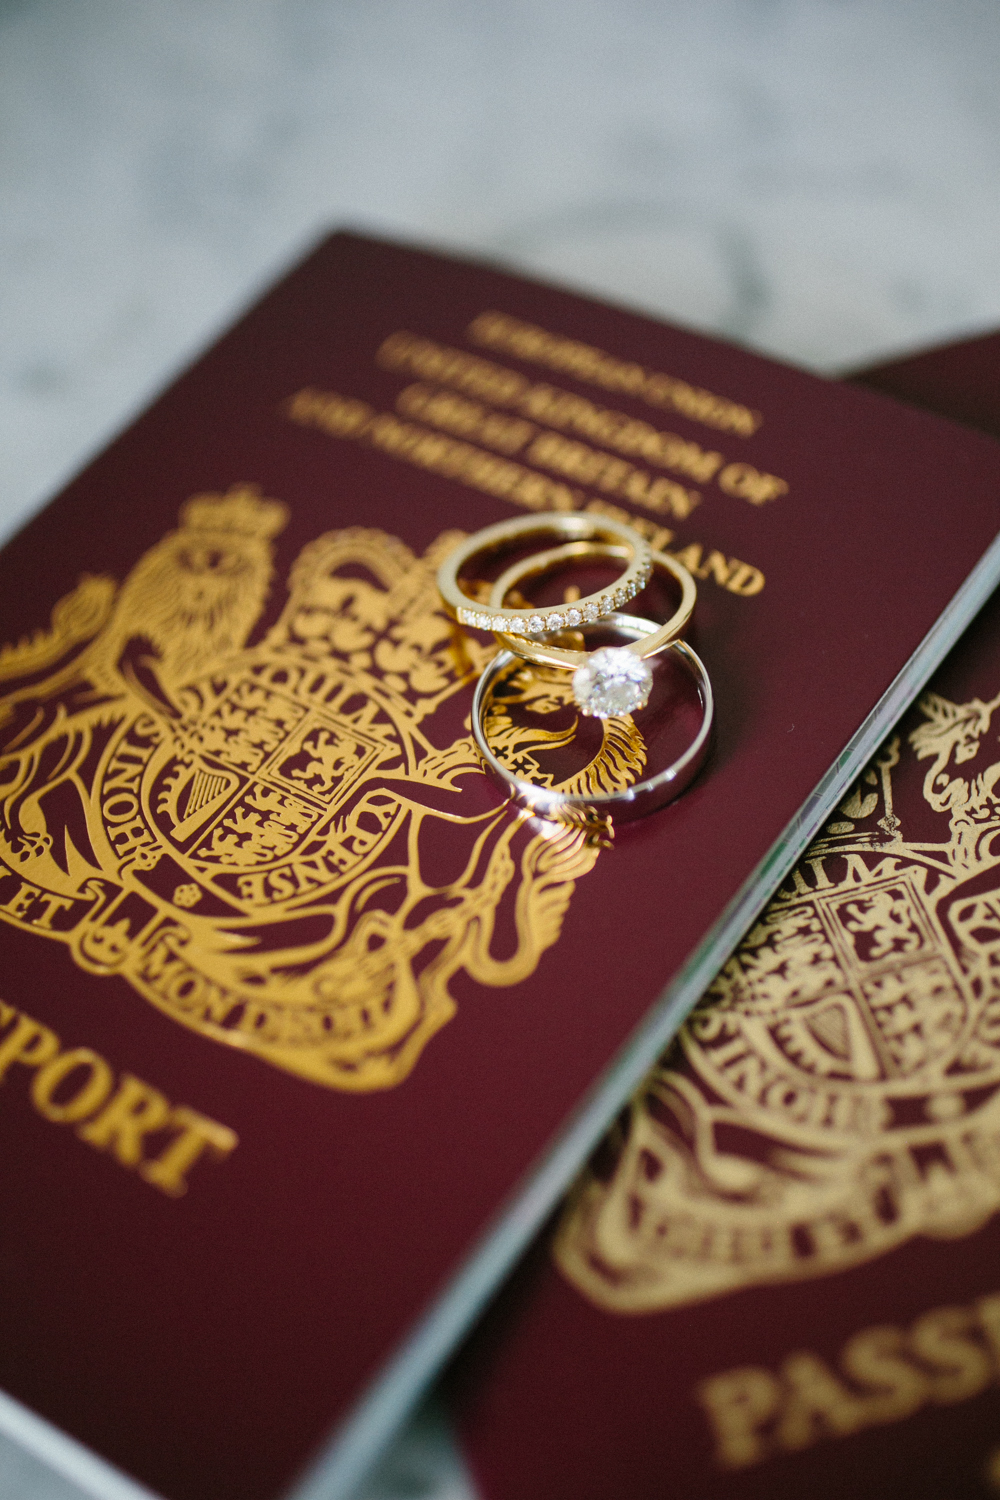 Eloping to NYC from the UK